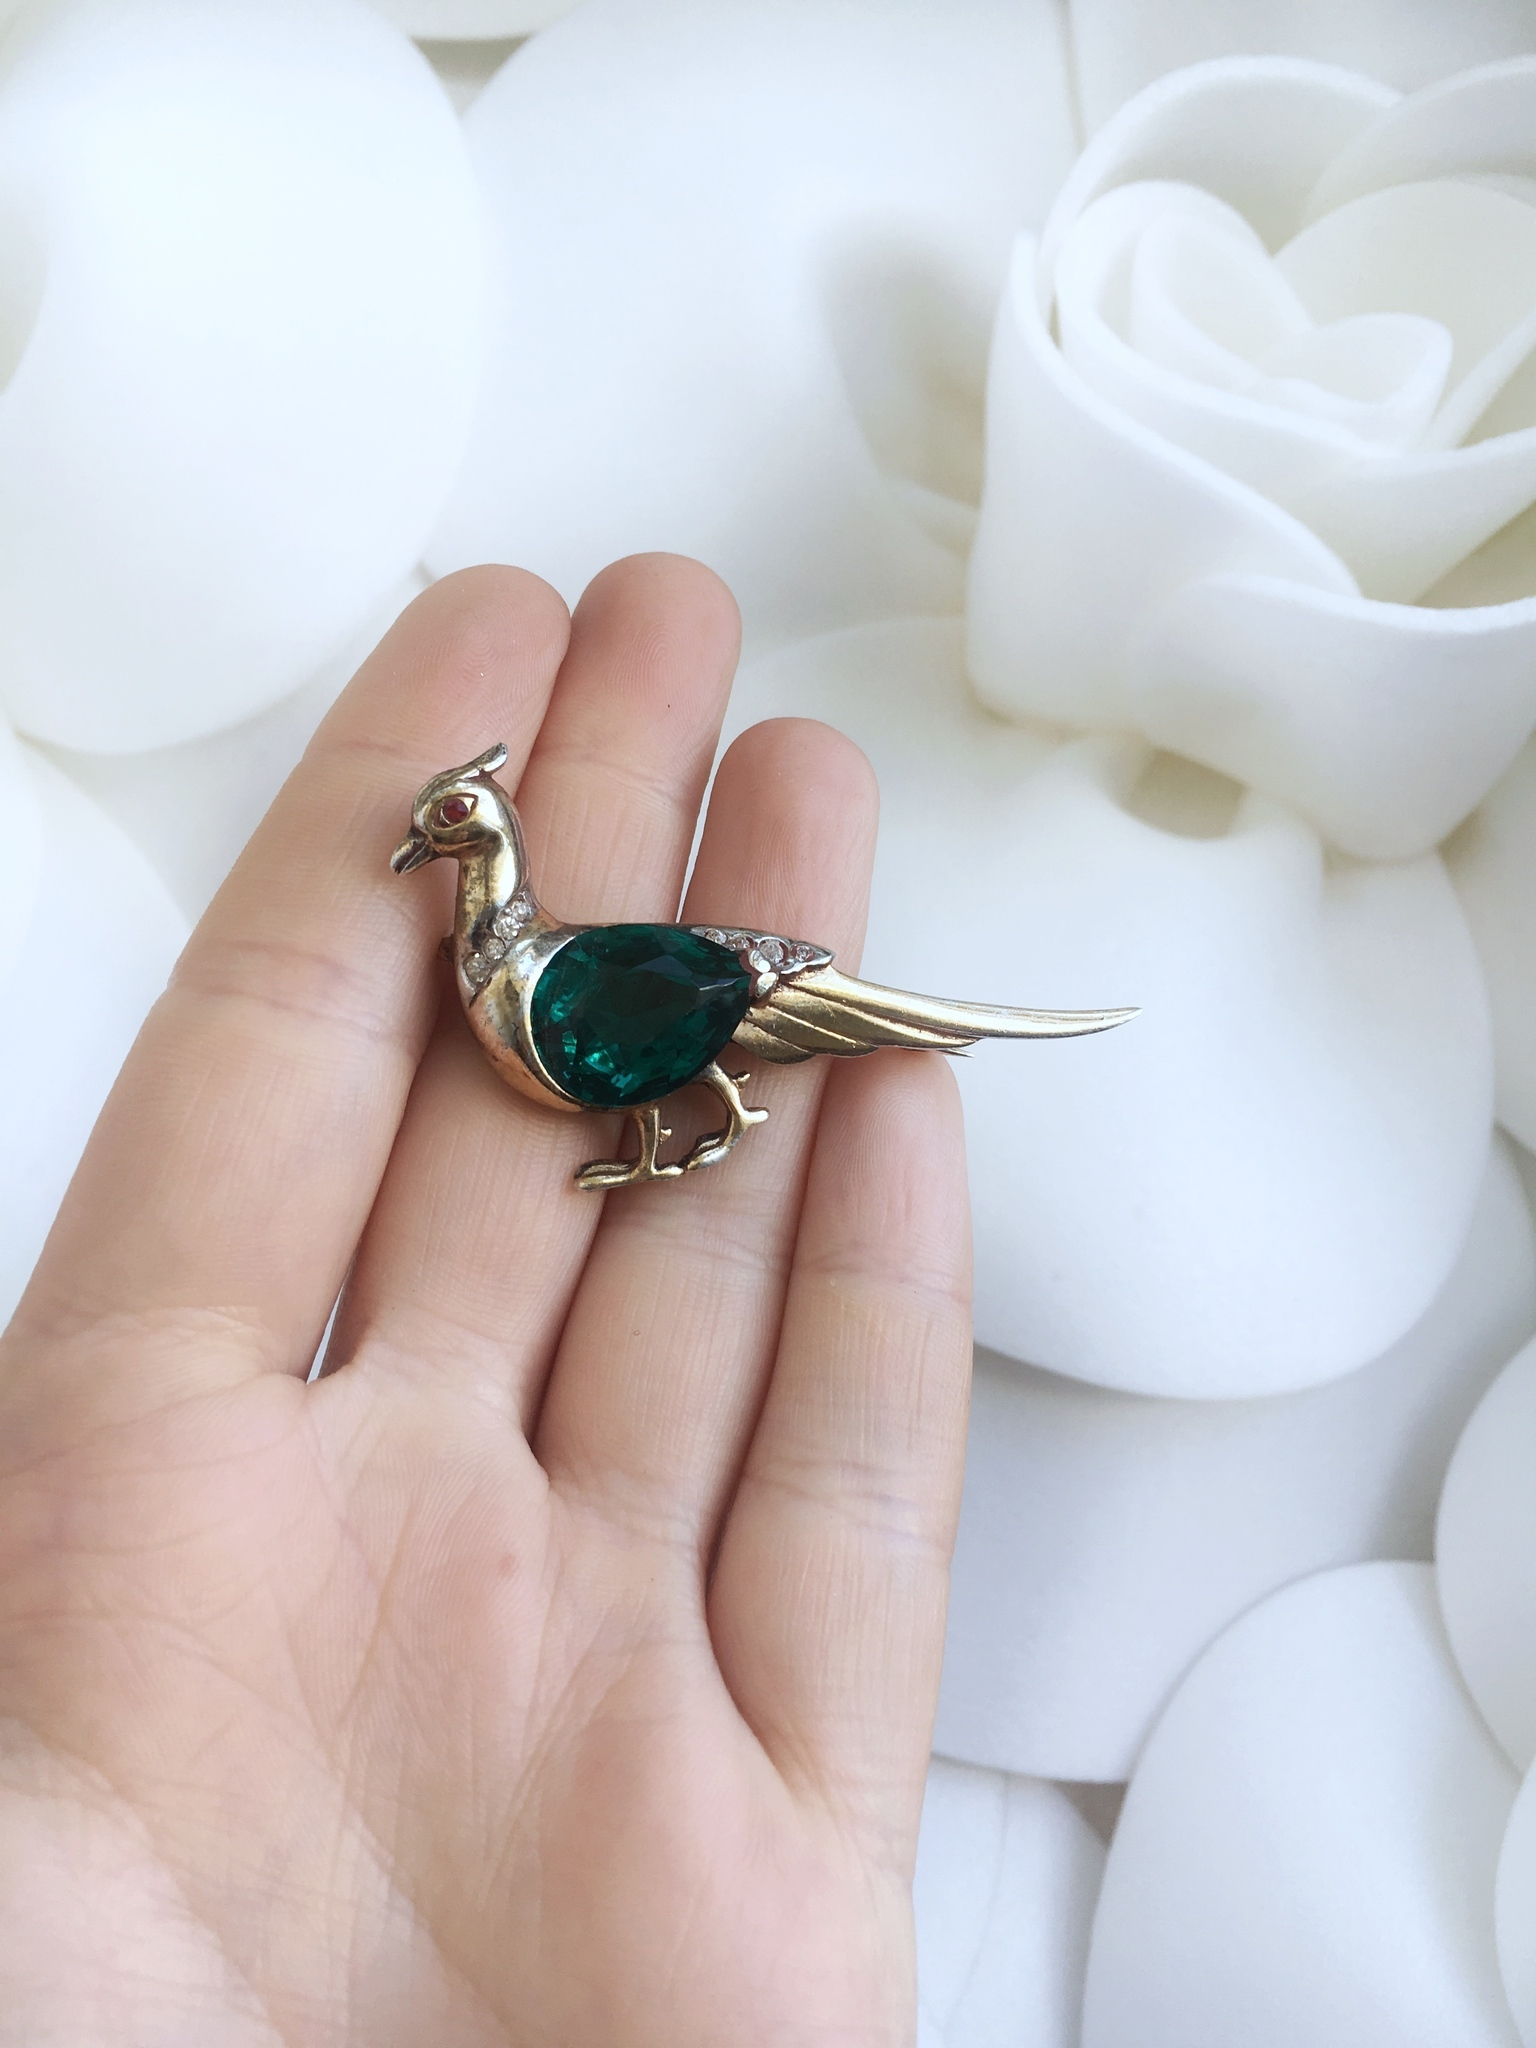 Collectible Pheasant brooch by Reja, 1940s.